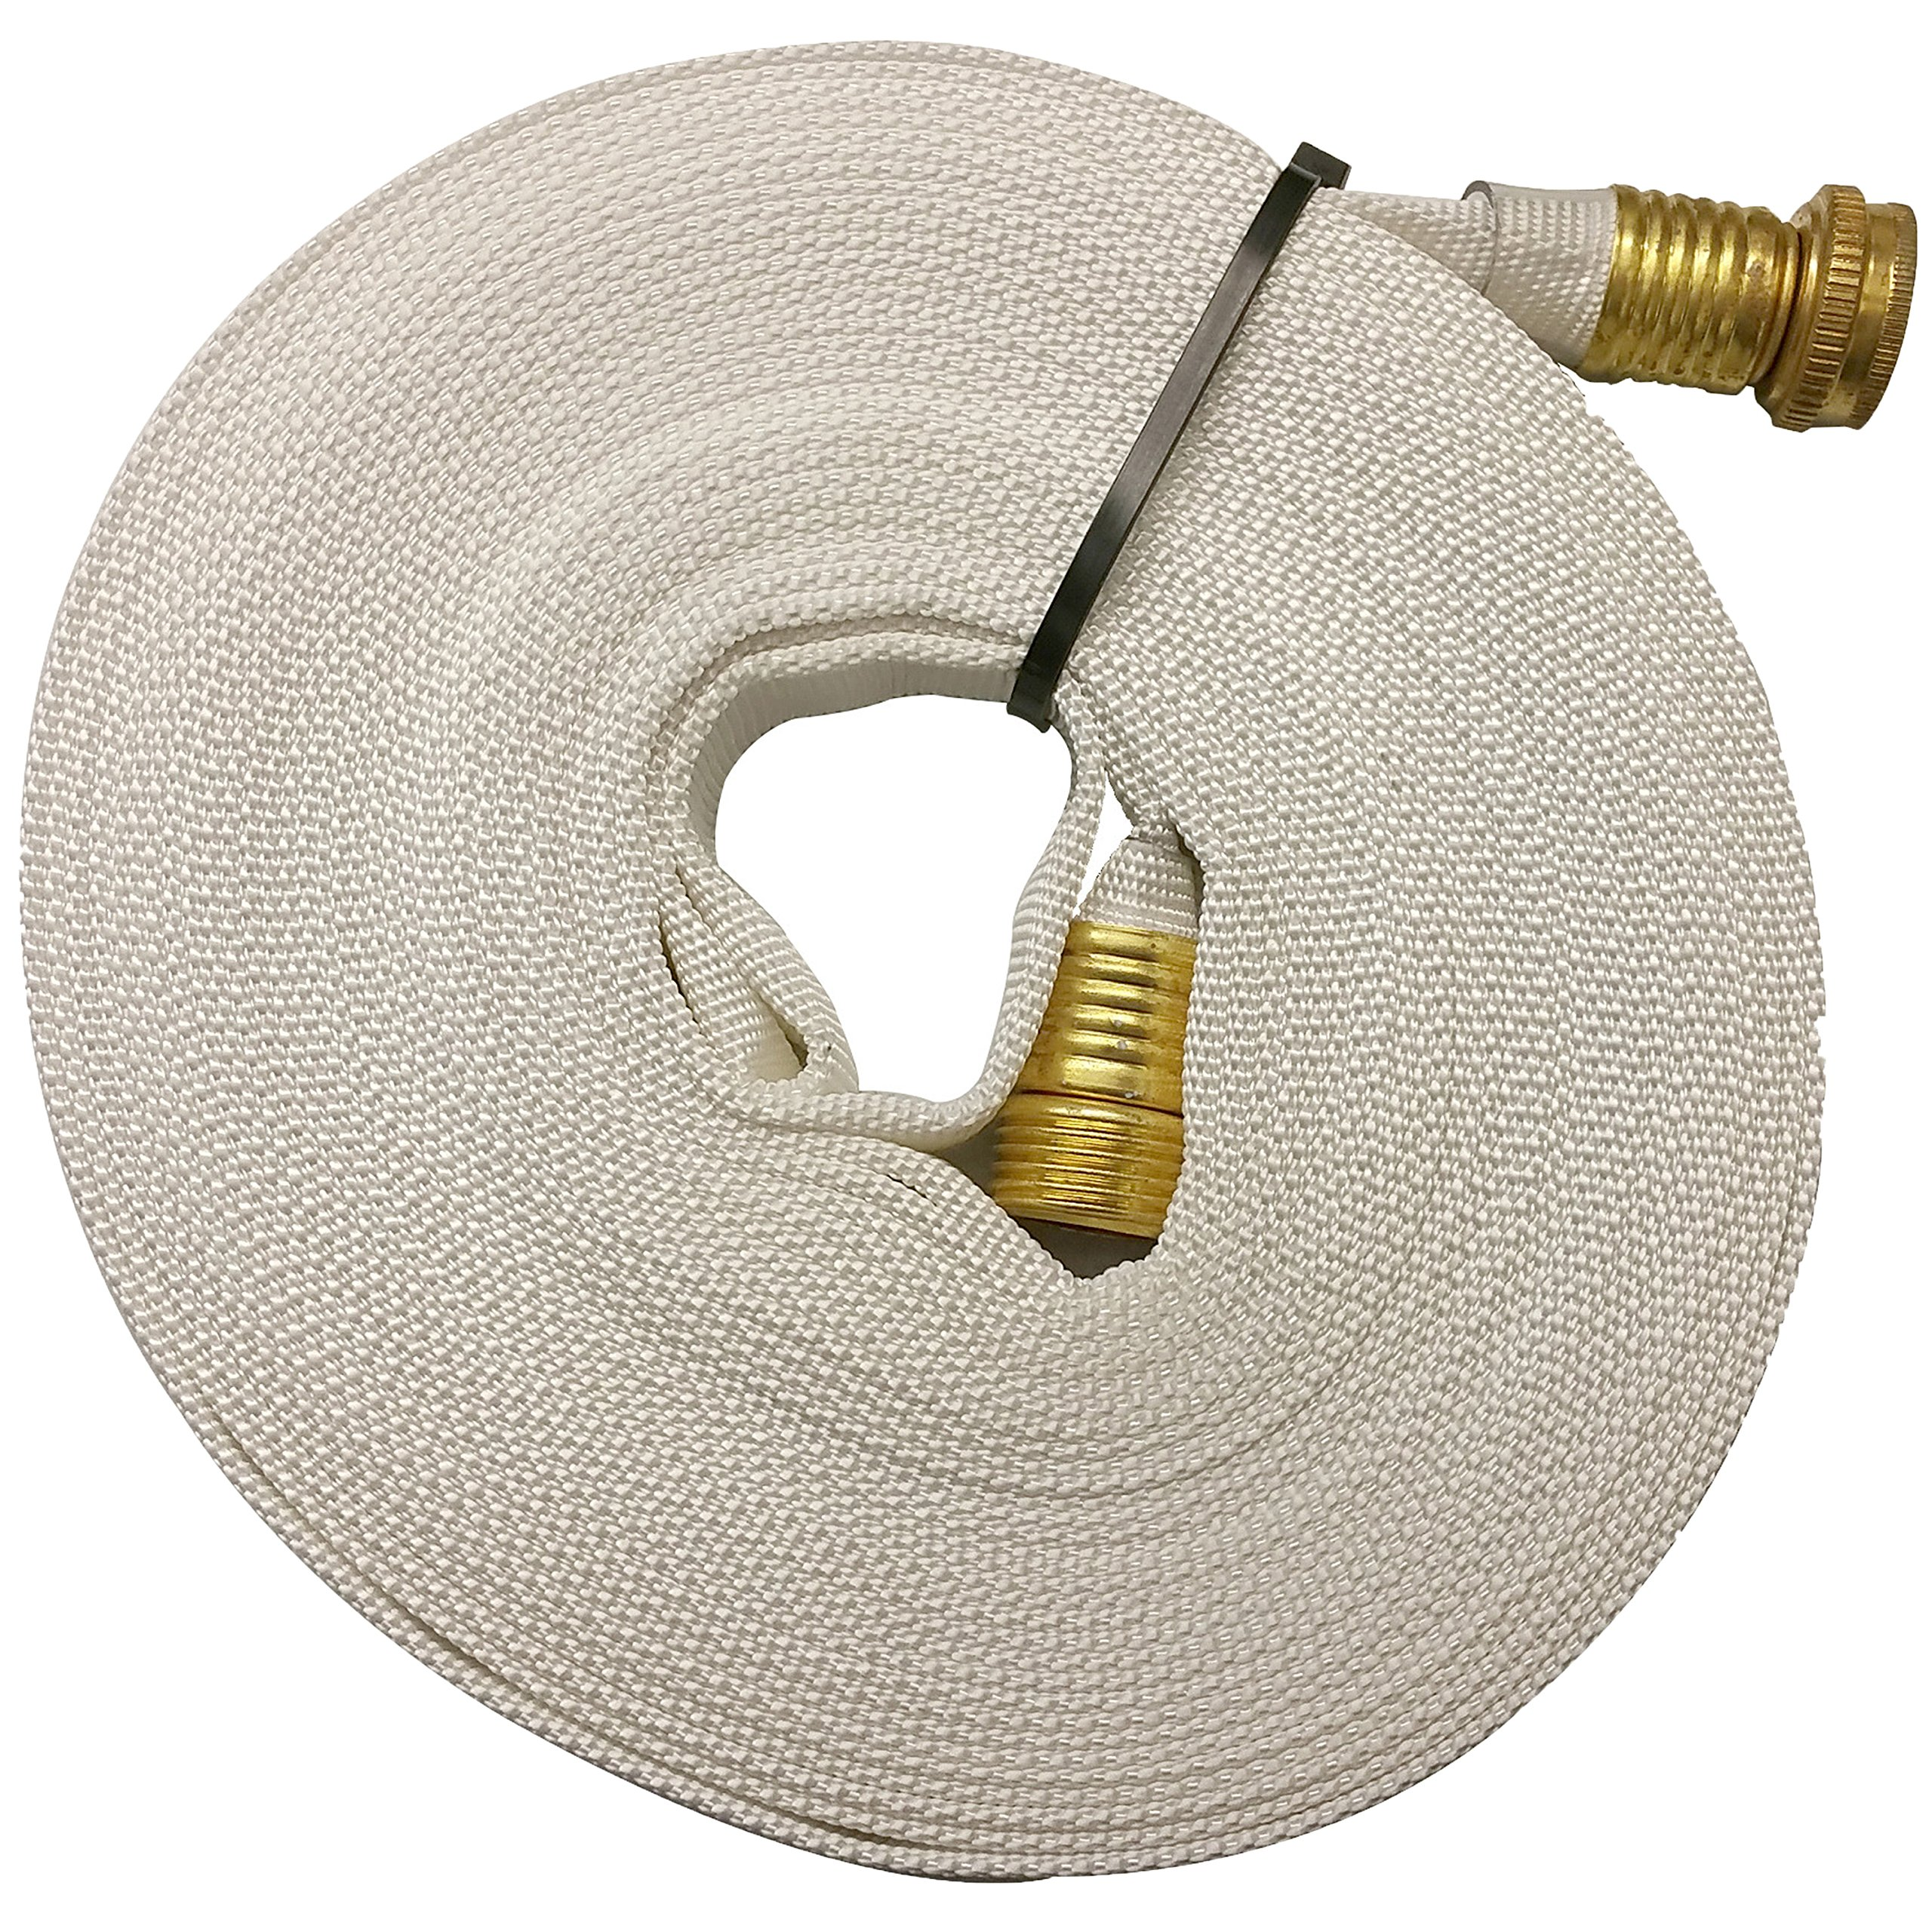 Key Fire 017-FF058-450 Polyester/Polyurethane/Brass/Plastic/Rubber 1061 Pencil Line Lay Flat Garden Hose, GHT Connection, 300 psi Maximum Pressure, 50' Length, 5/8'' by Key Fire